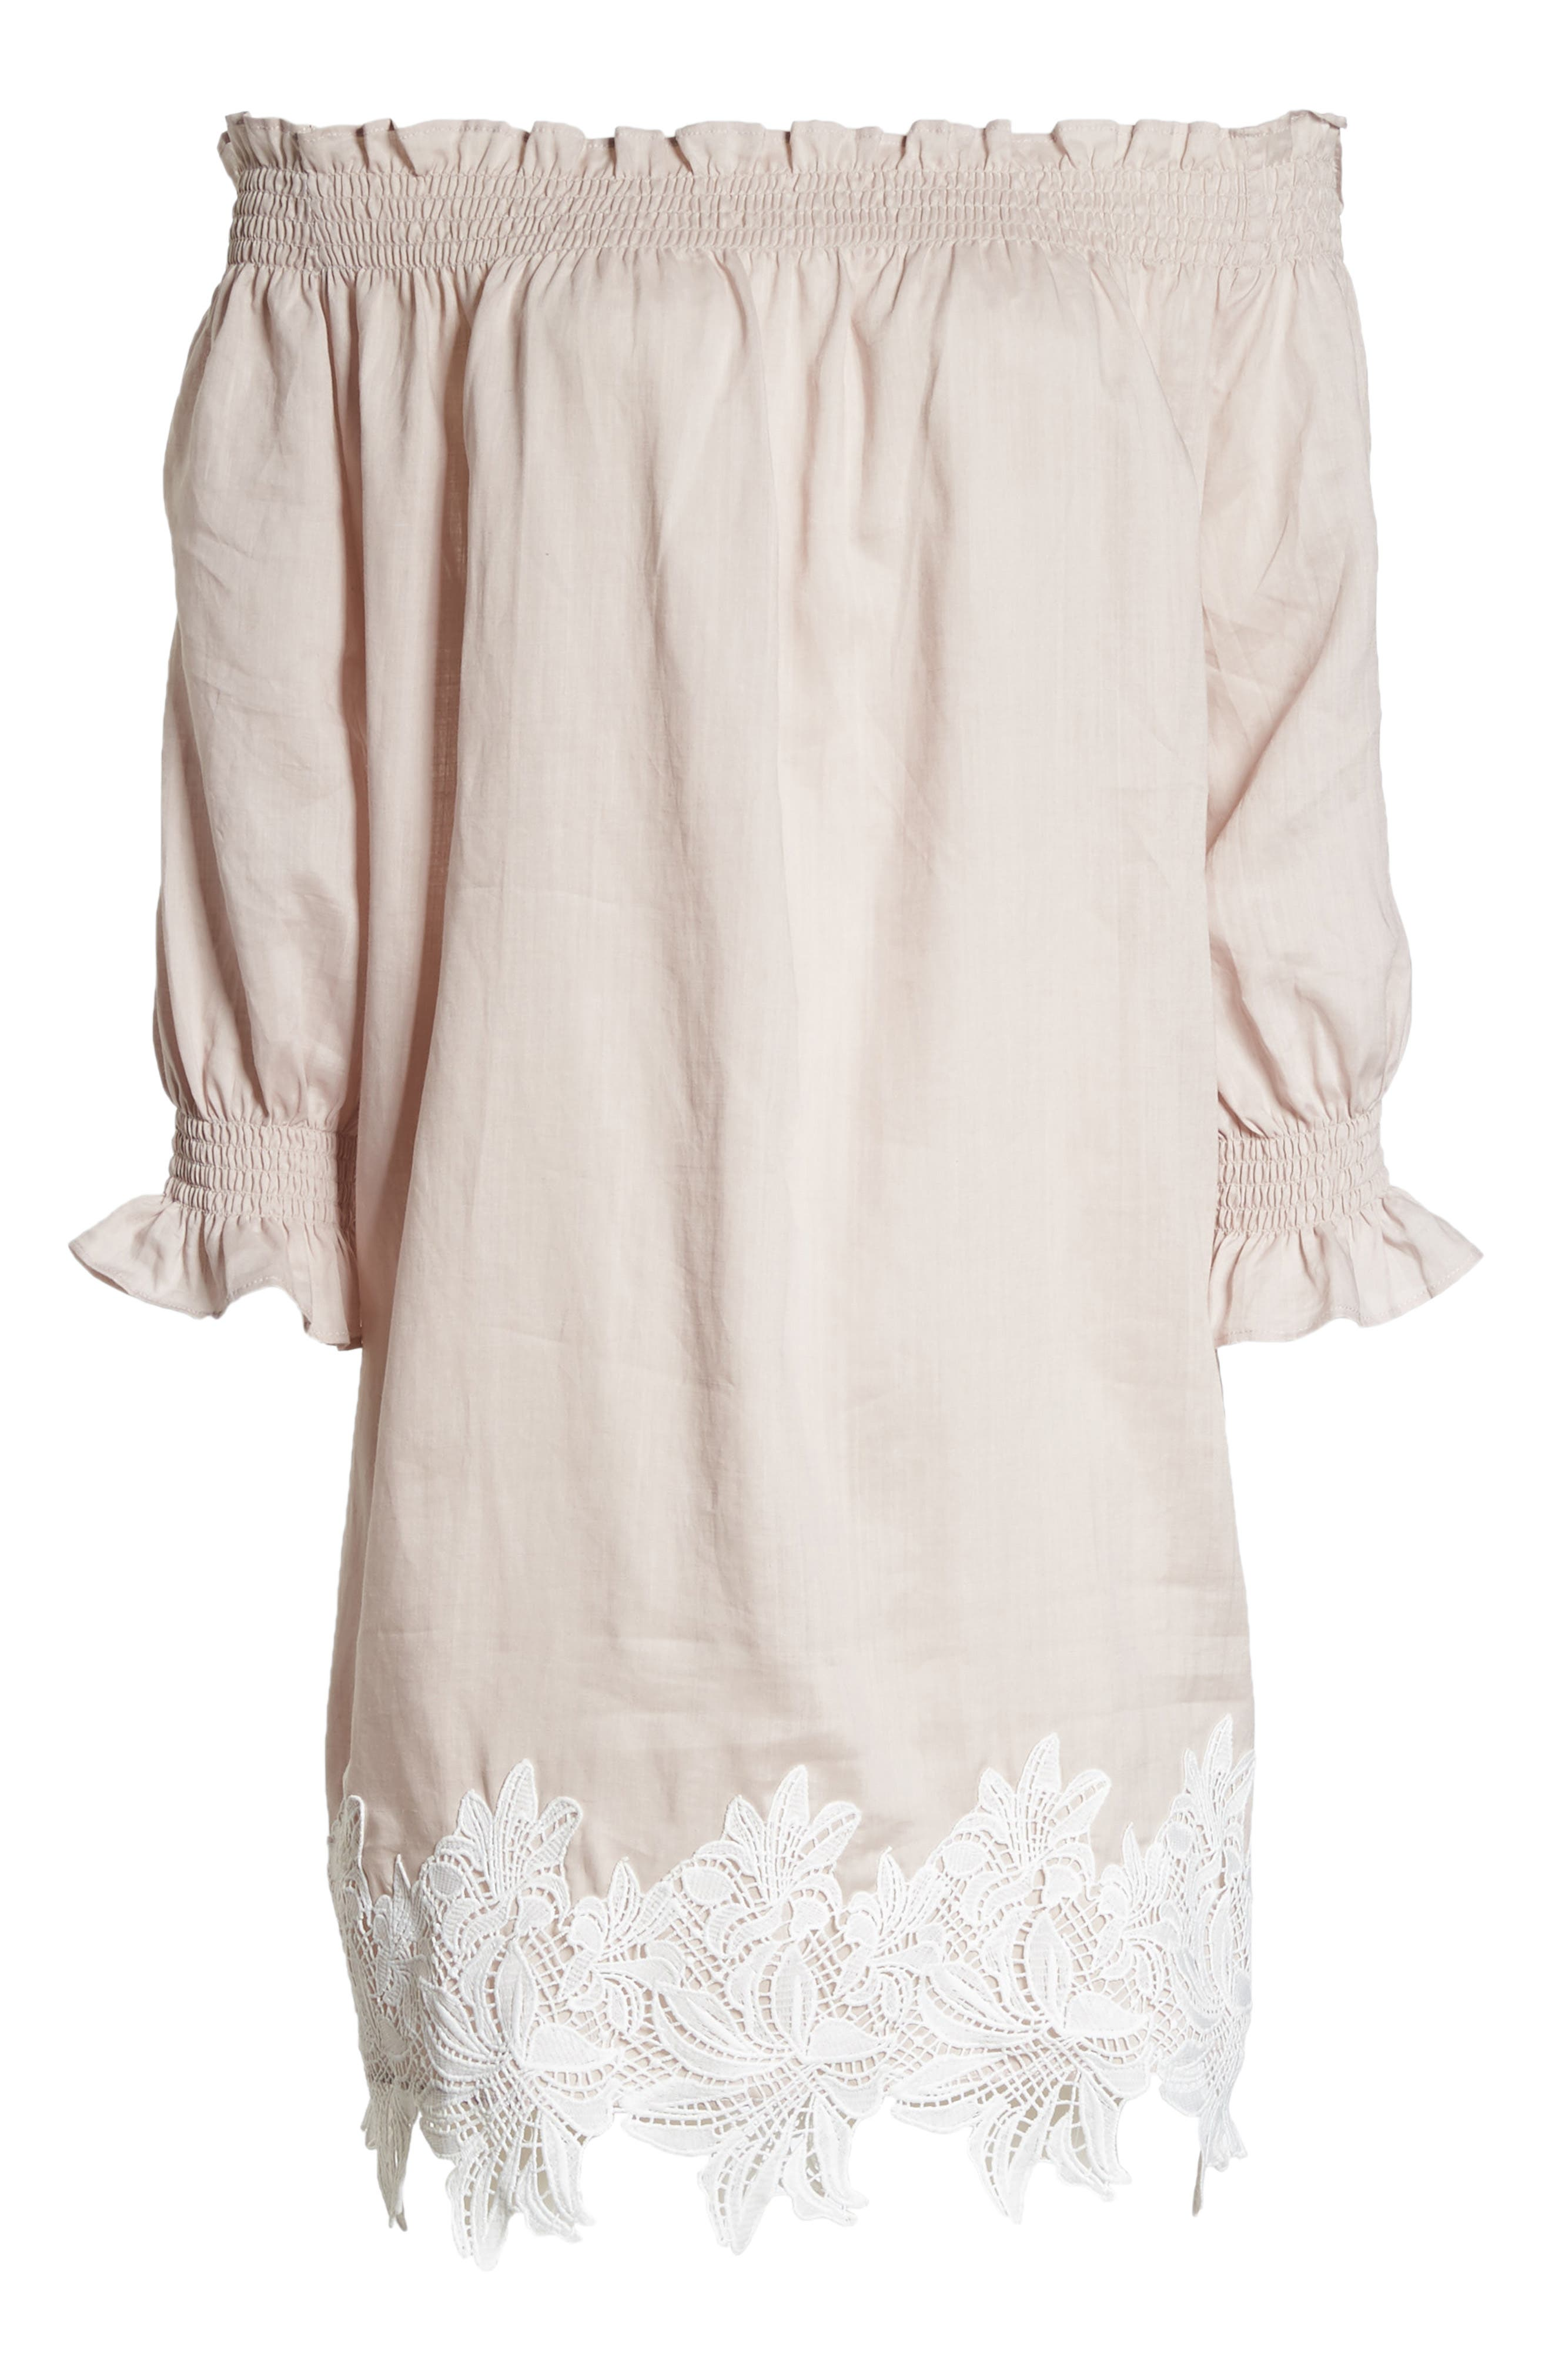 Hudson Off the Shoulder Lace Hem Linen Dress,                             Alternate thumbnail 8, color,                             Pink